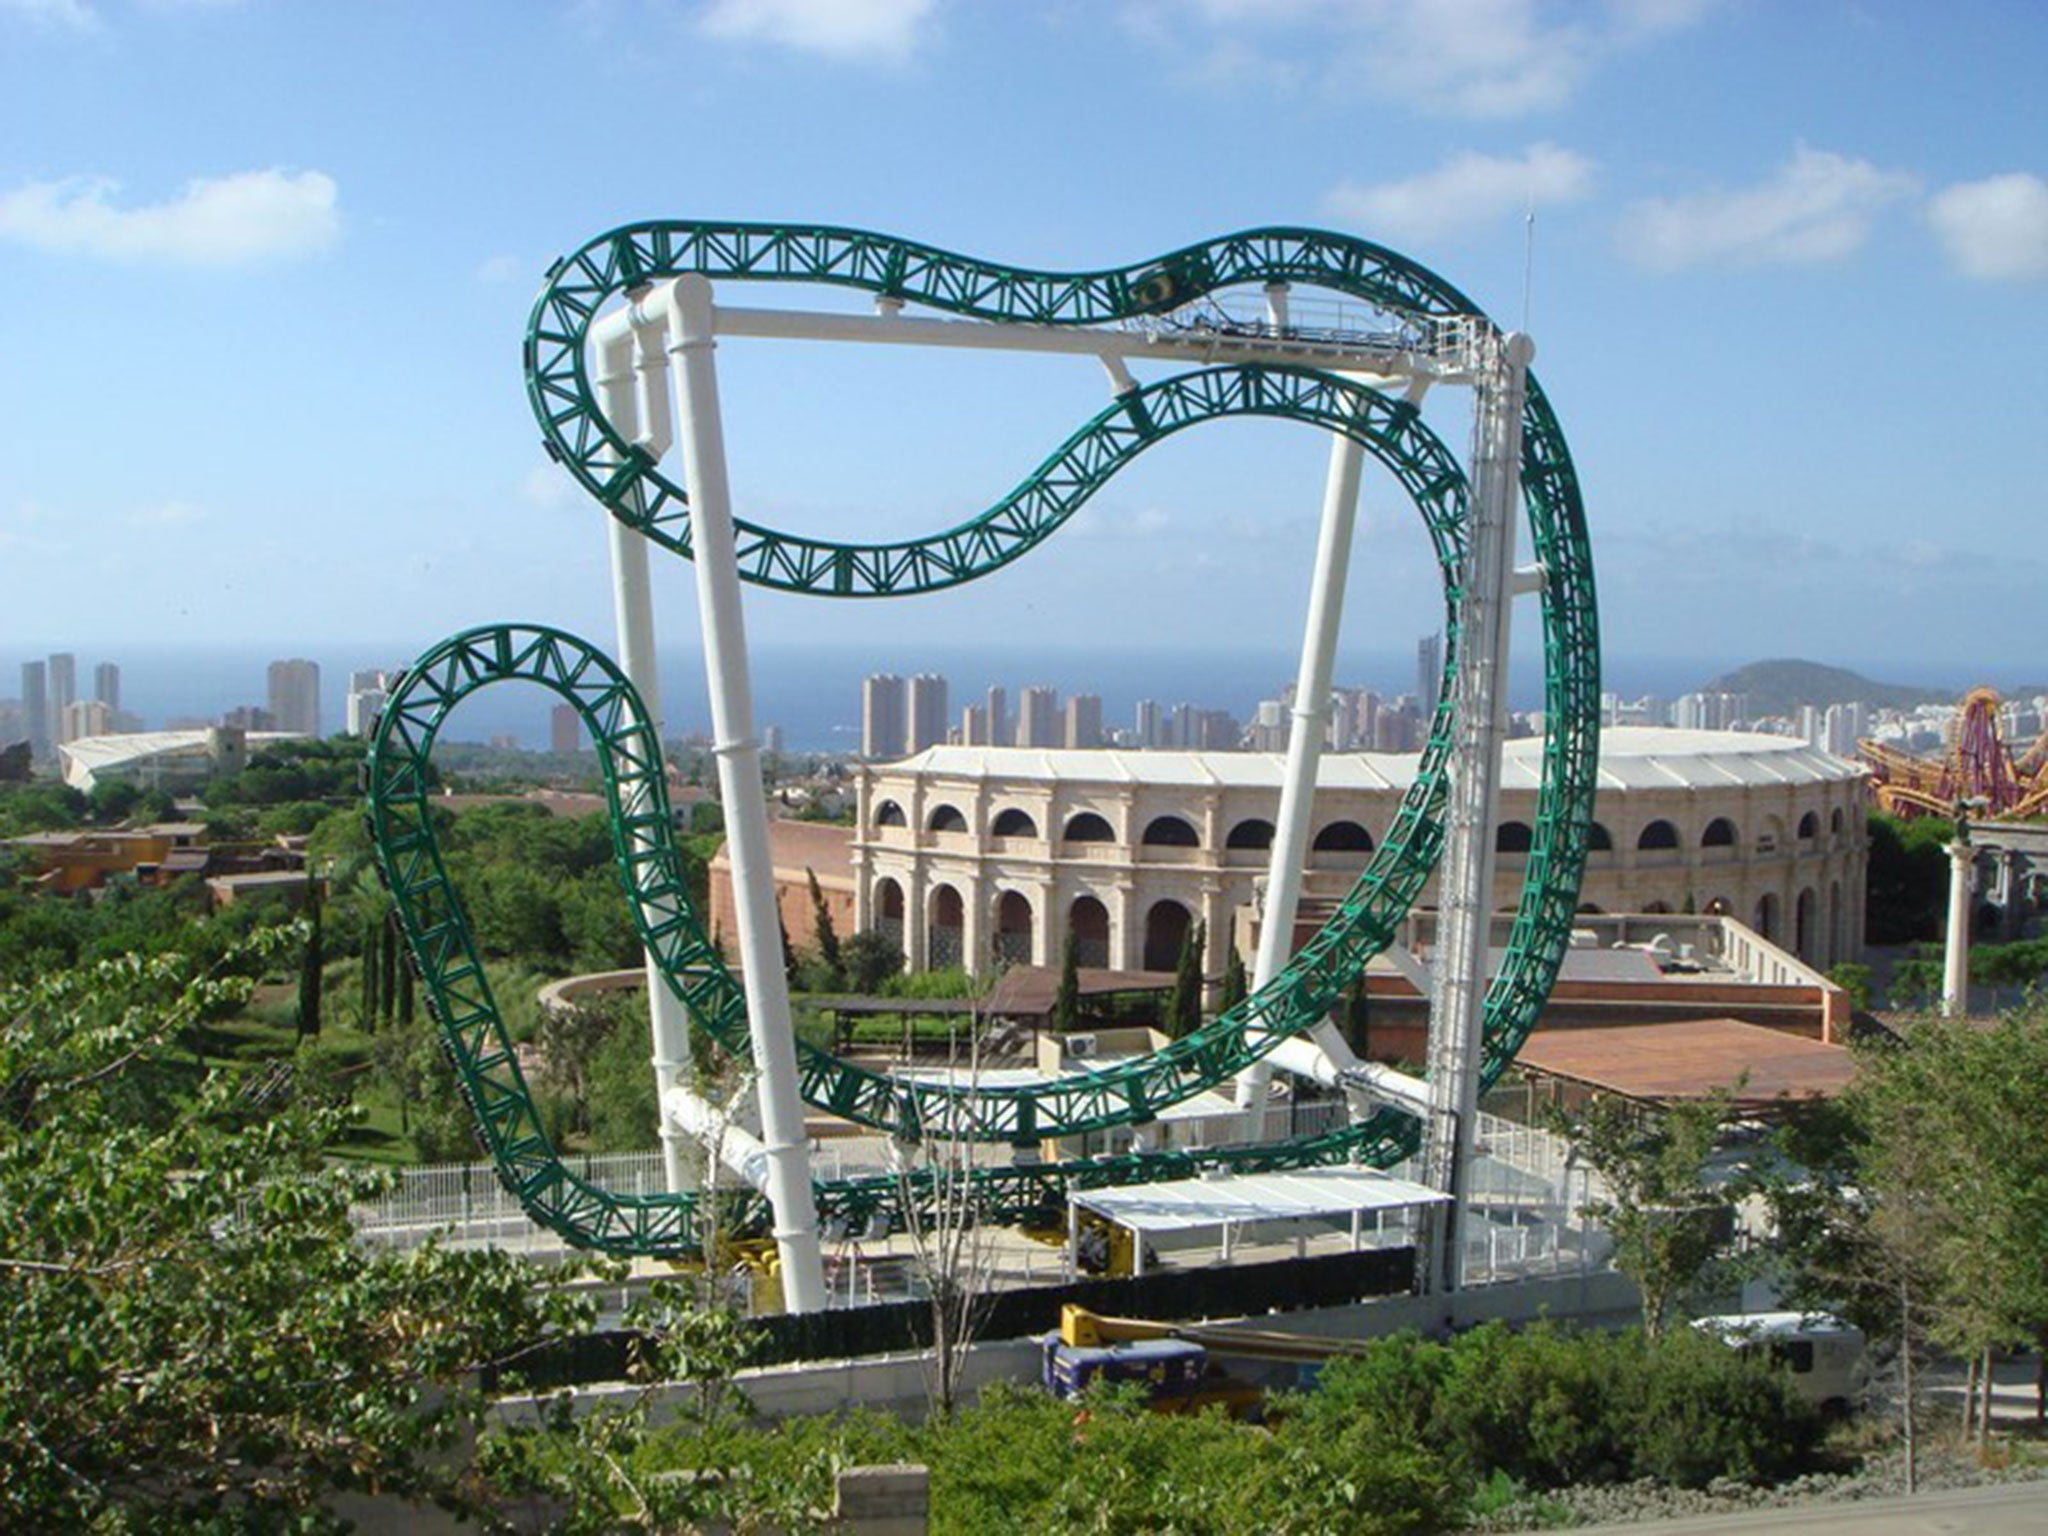 British Teenager Dies After Falling From Rollercoaster